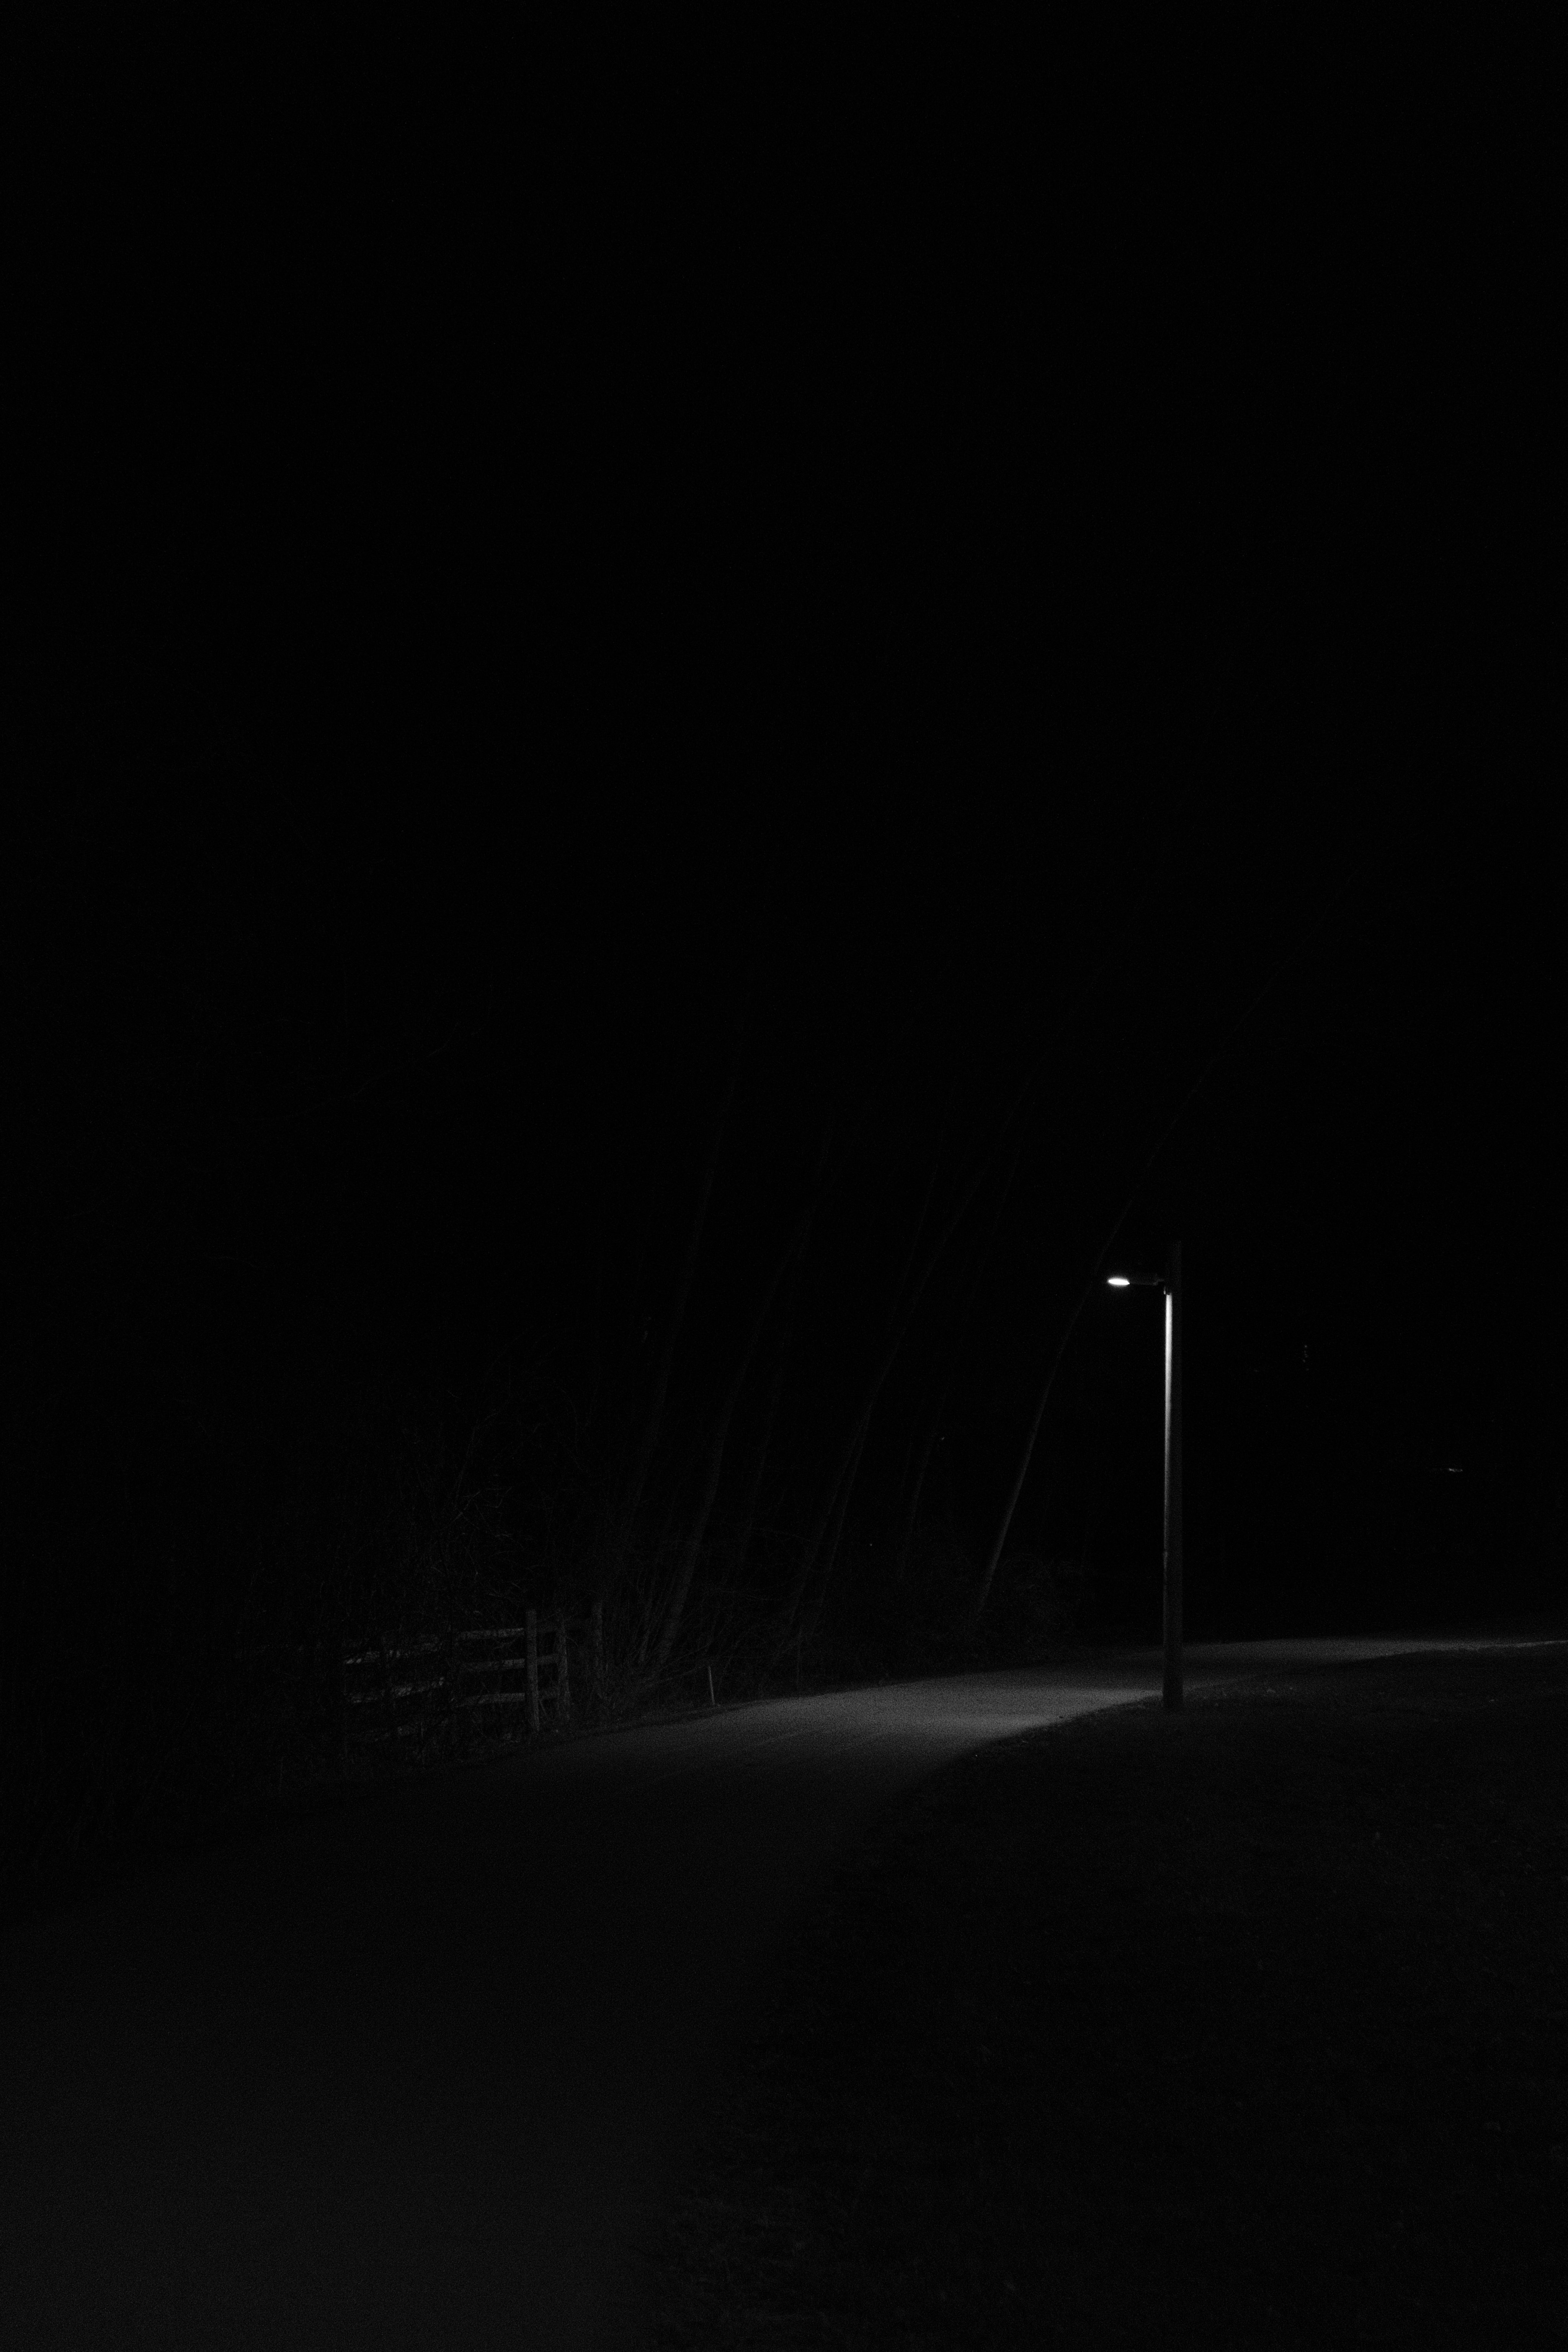 142728 Screensavers and Wallpapers Bw for phone. Download Night, Road, Lamp, Lantern, Bw, Chb, Glow pictures for free